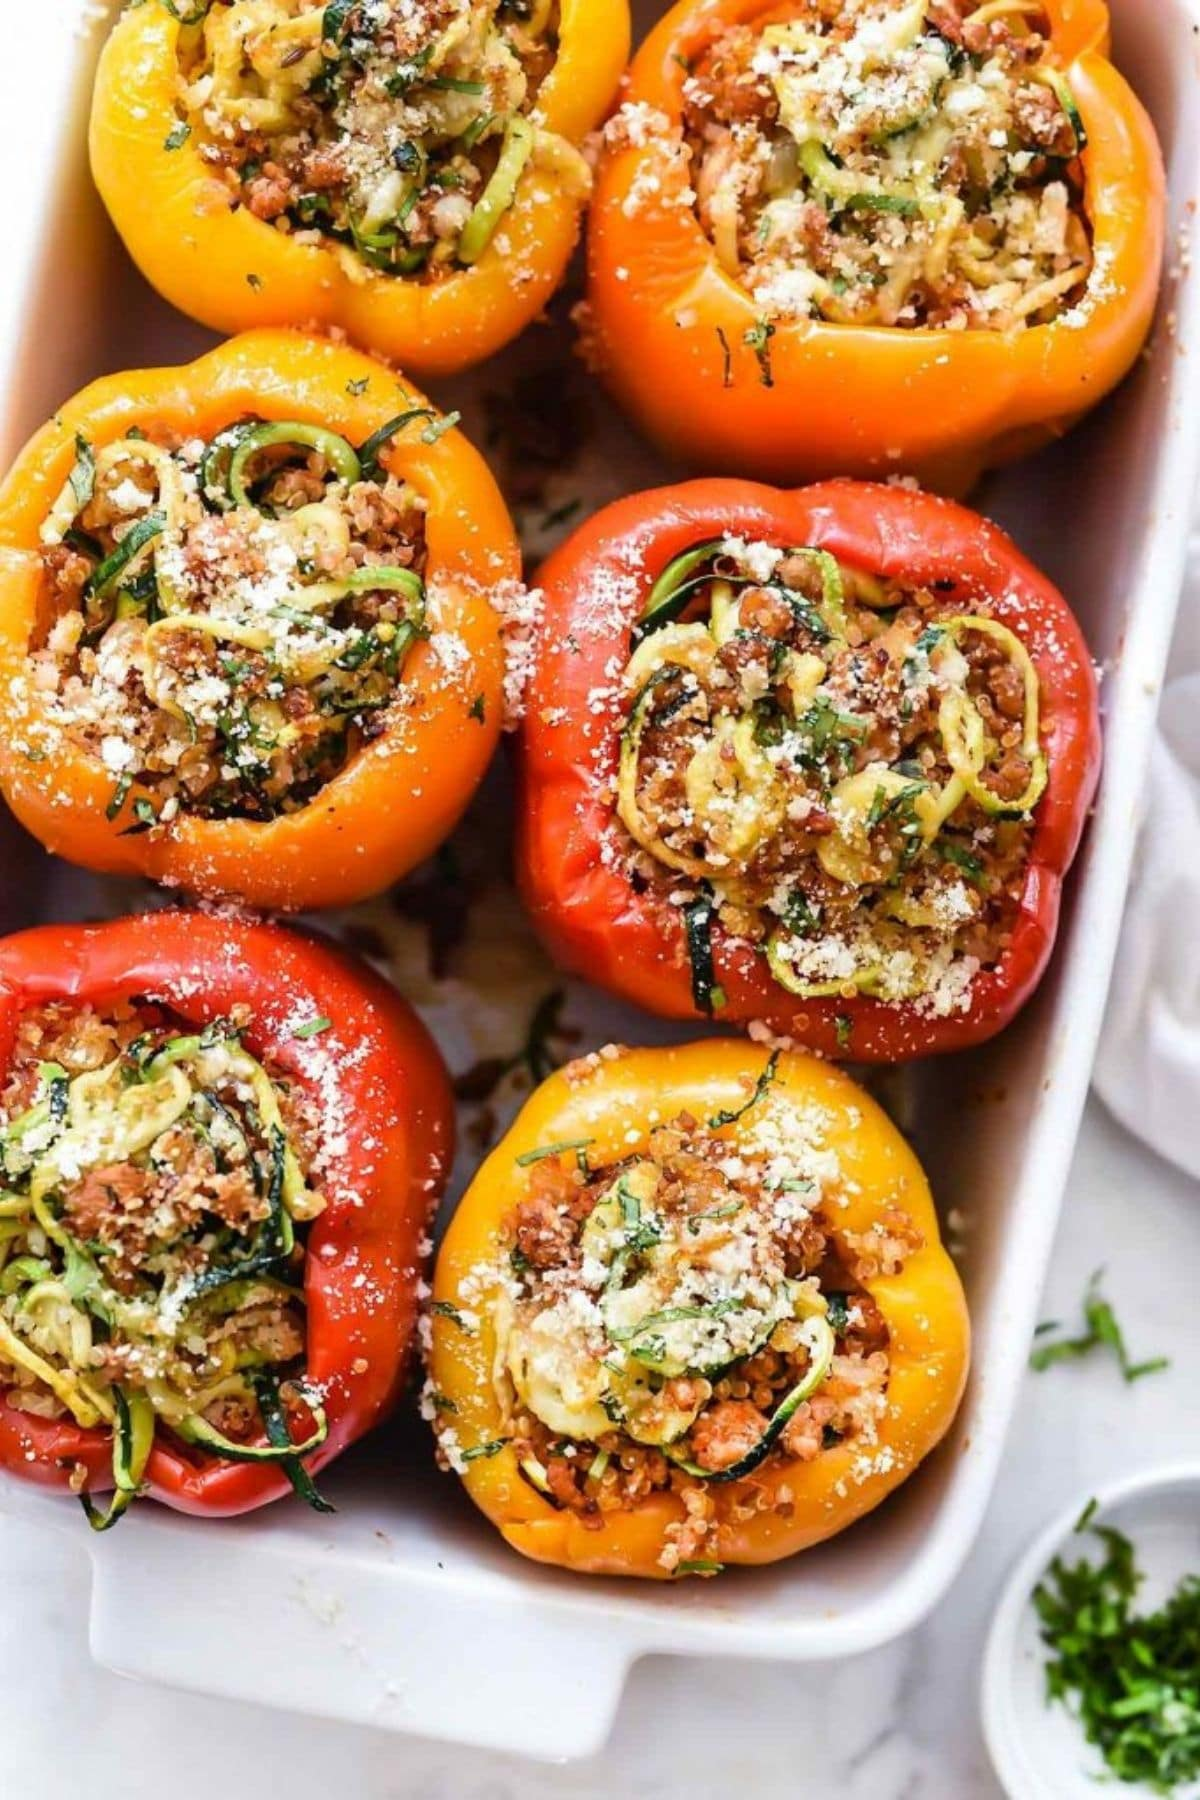 White baking dish filled with stuffed bell peppers